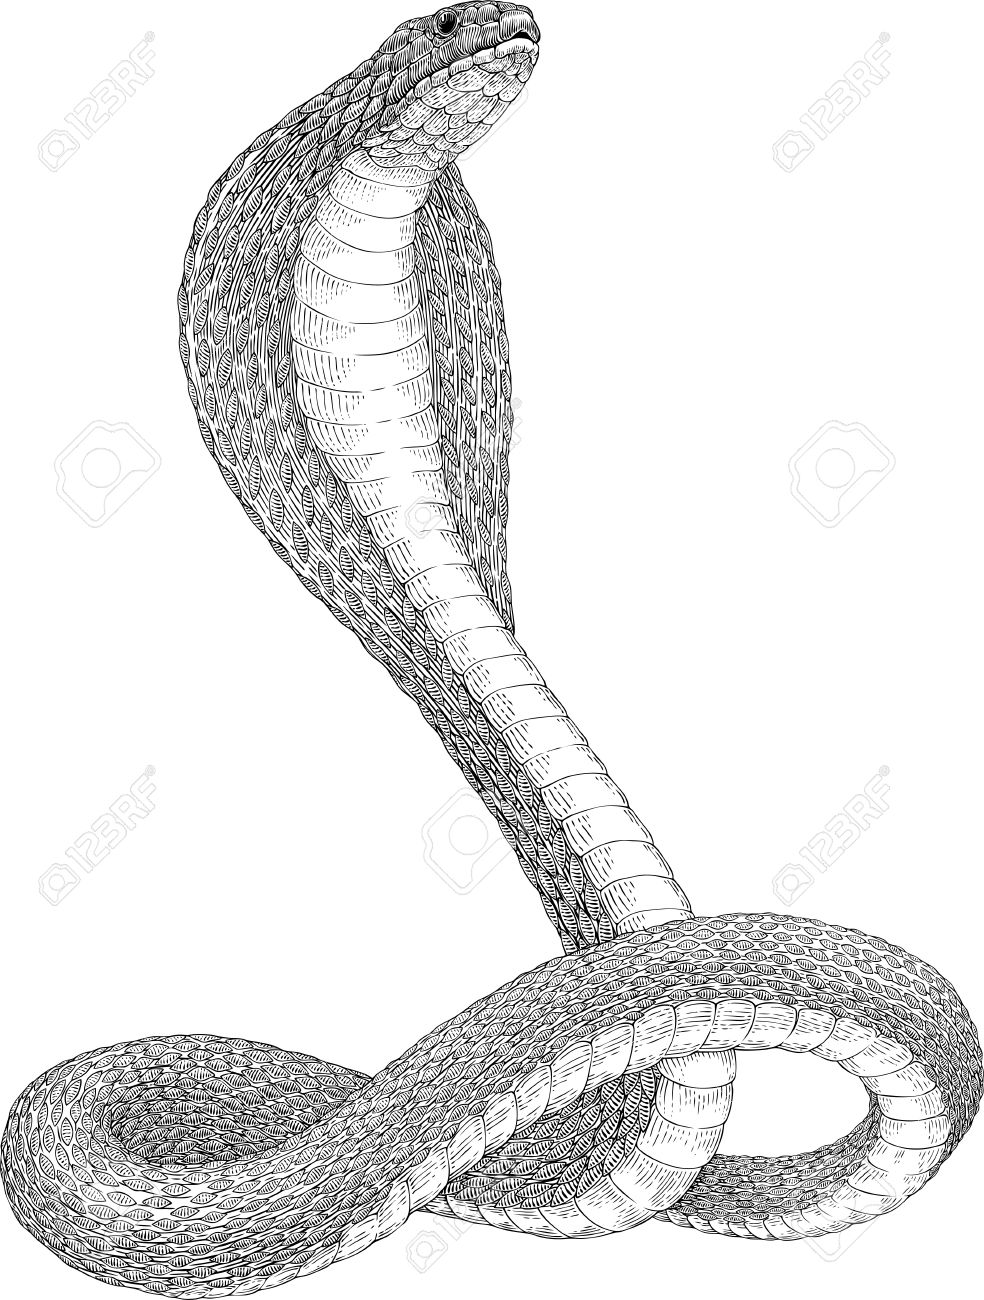 black and white vector illustration of king cobra snake royalty free